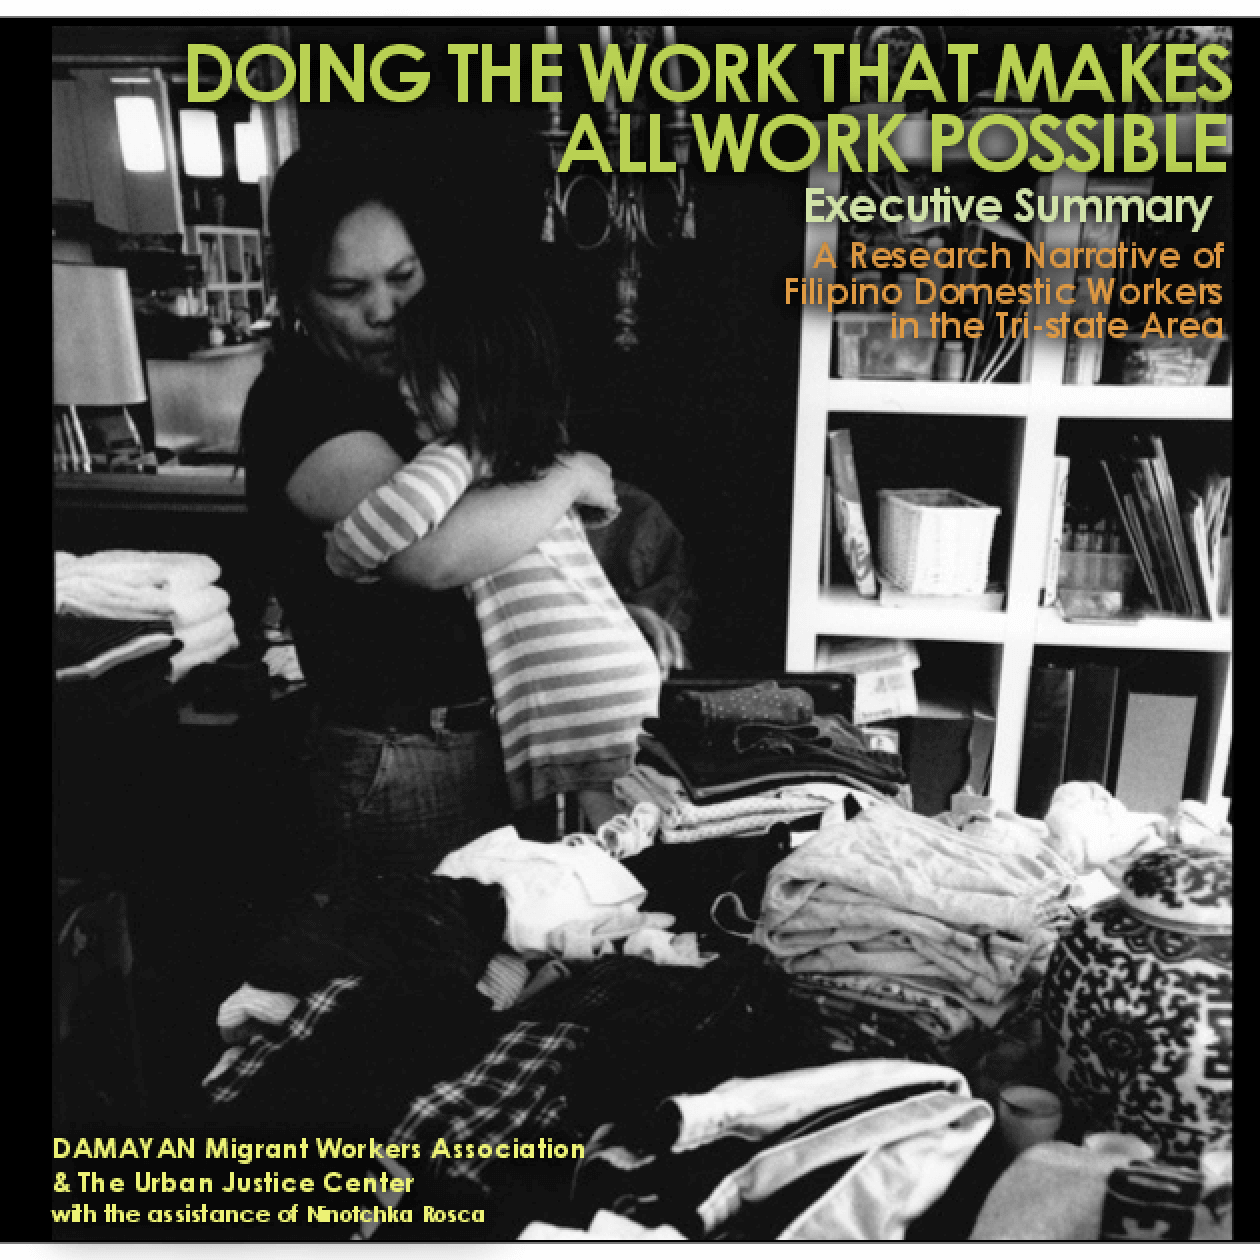 Doing the Work that Makes All Work Possible: A Research Narrative of Filipino Domestic Workers in the Tri-state Area - Executive Summary